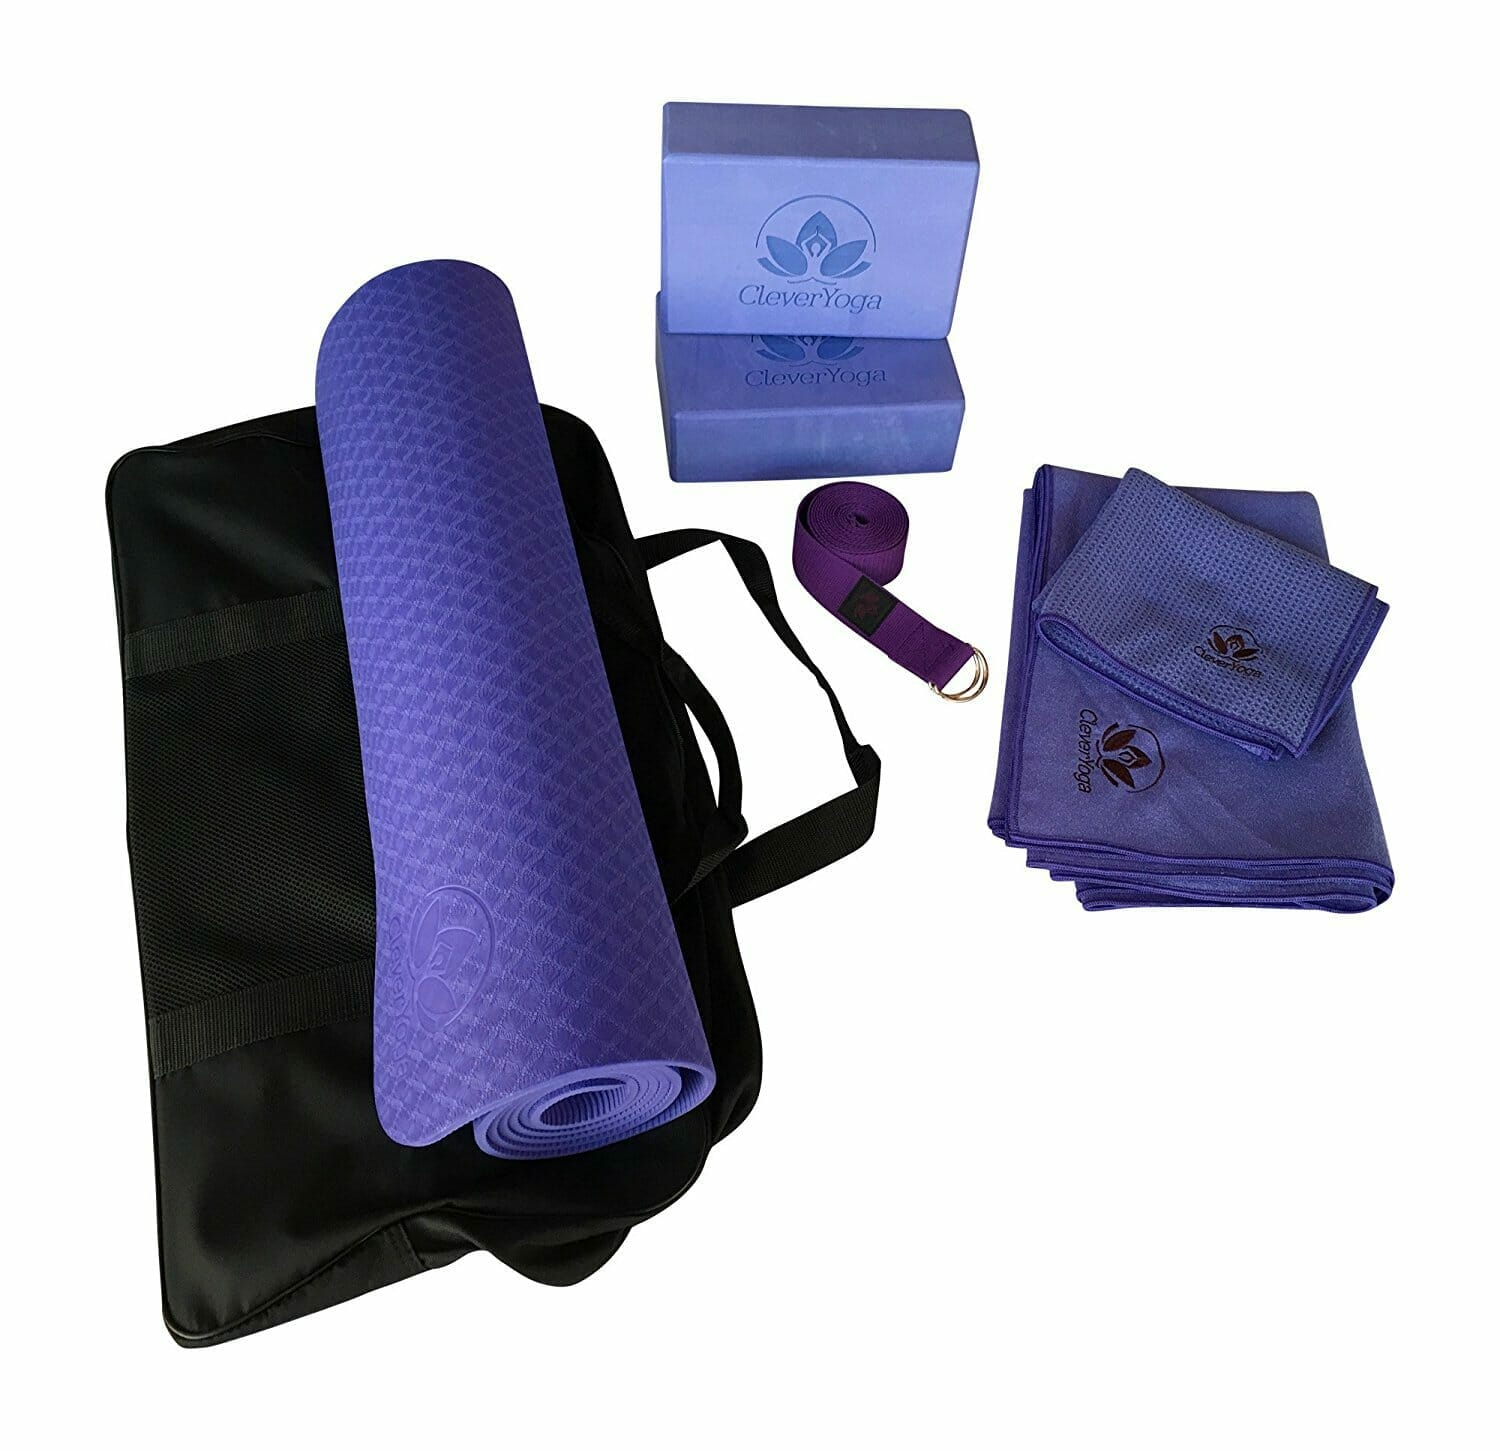 We Always Want To Encourage And Support Our Friends In Their Decisions Get Healthy If Your Best Friend Has Expressed An Interest Yoga